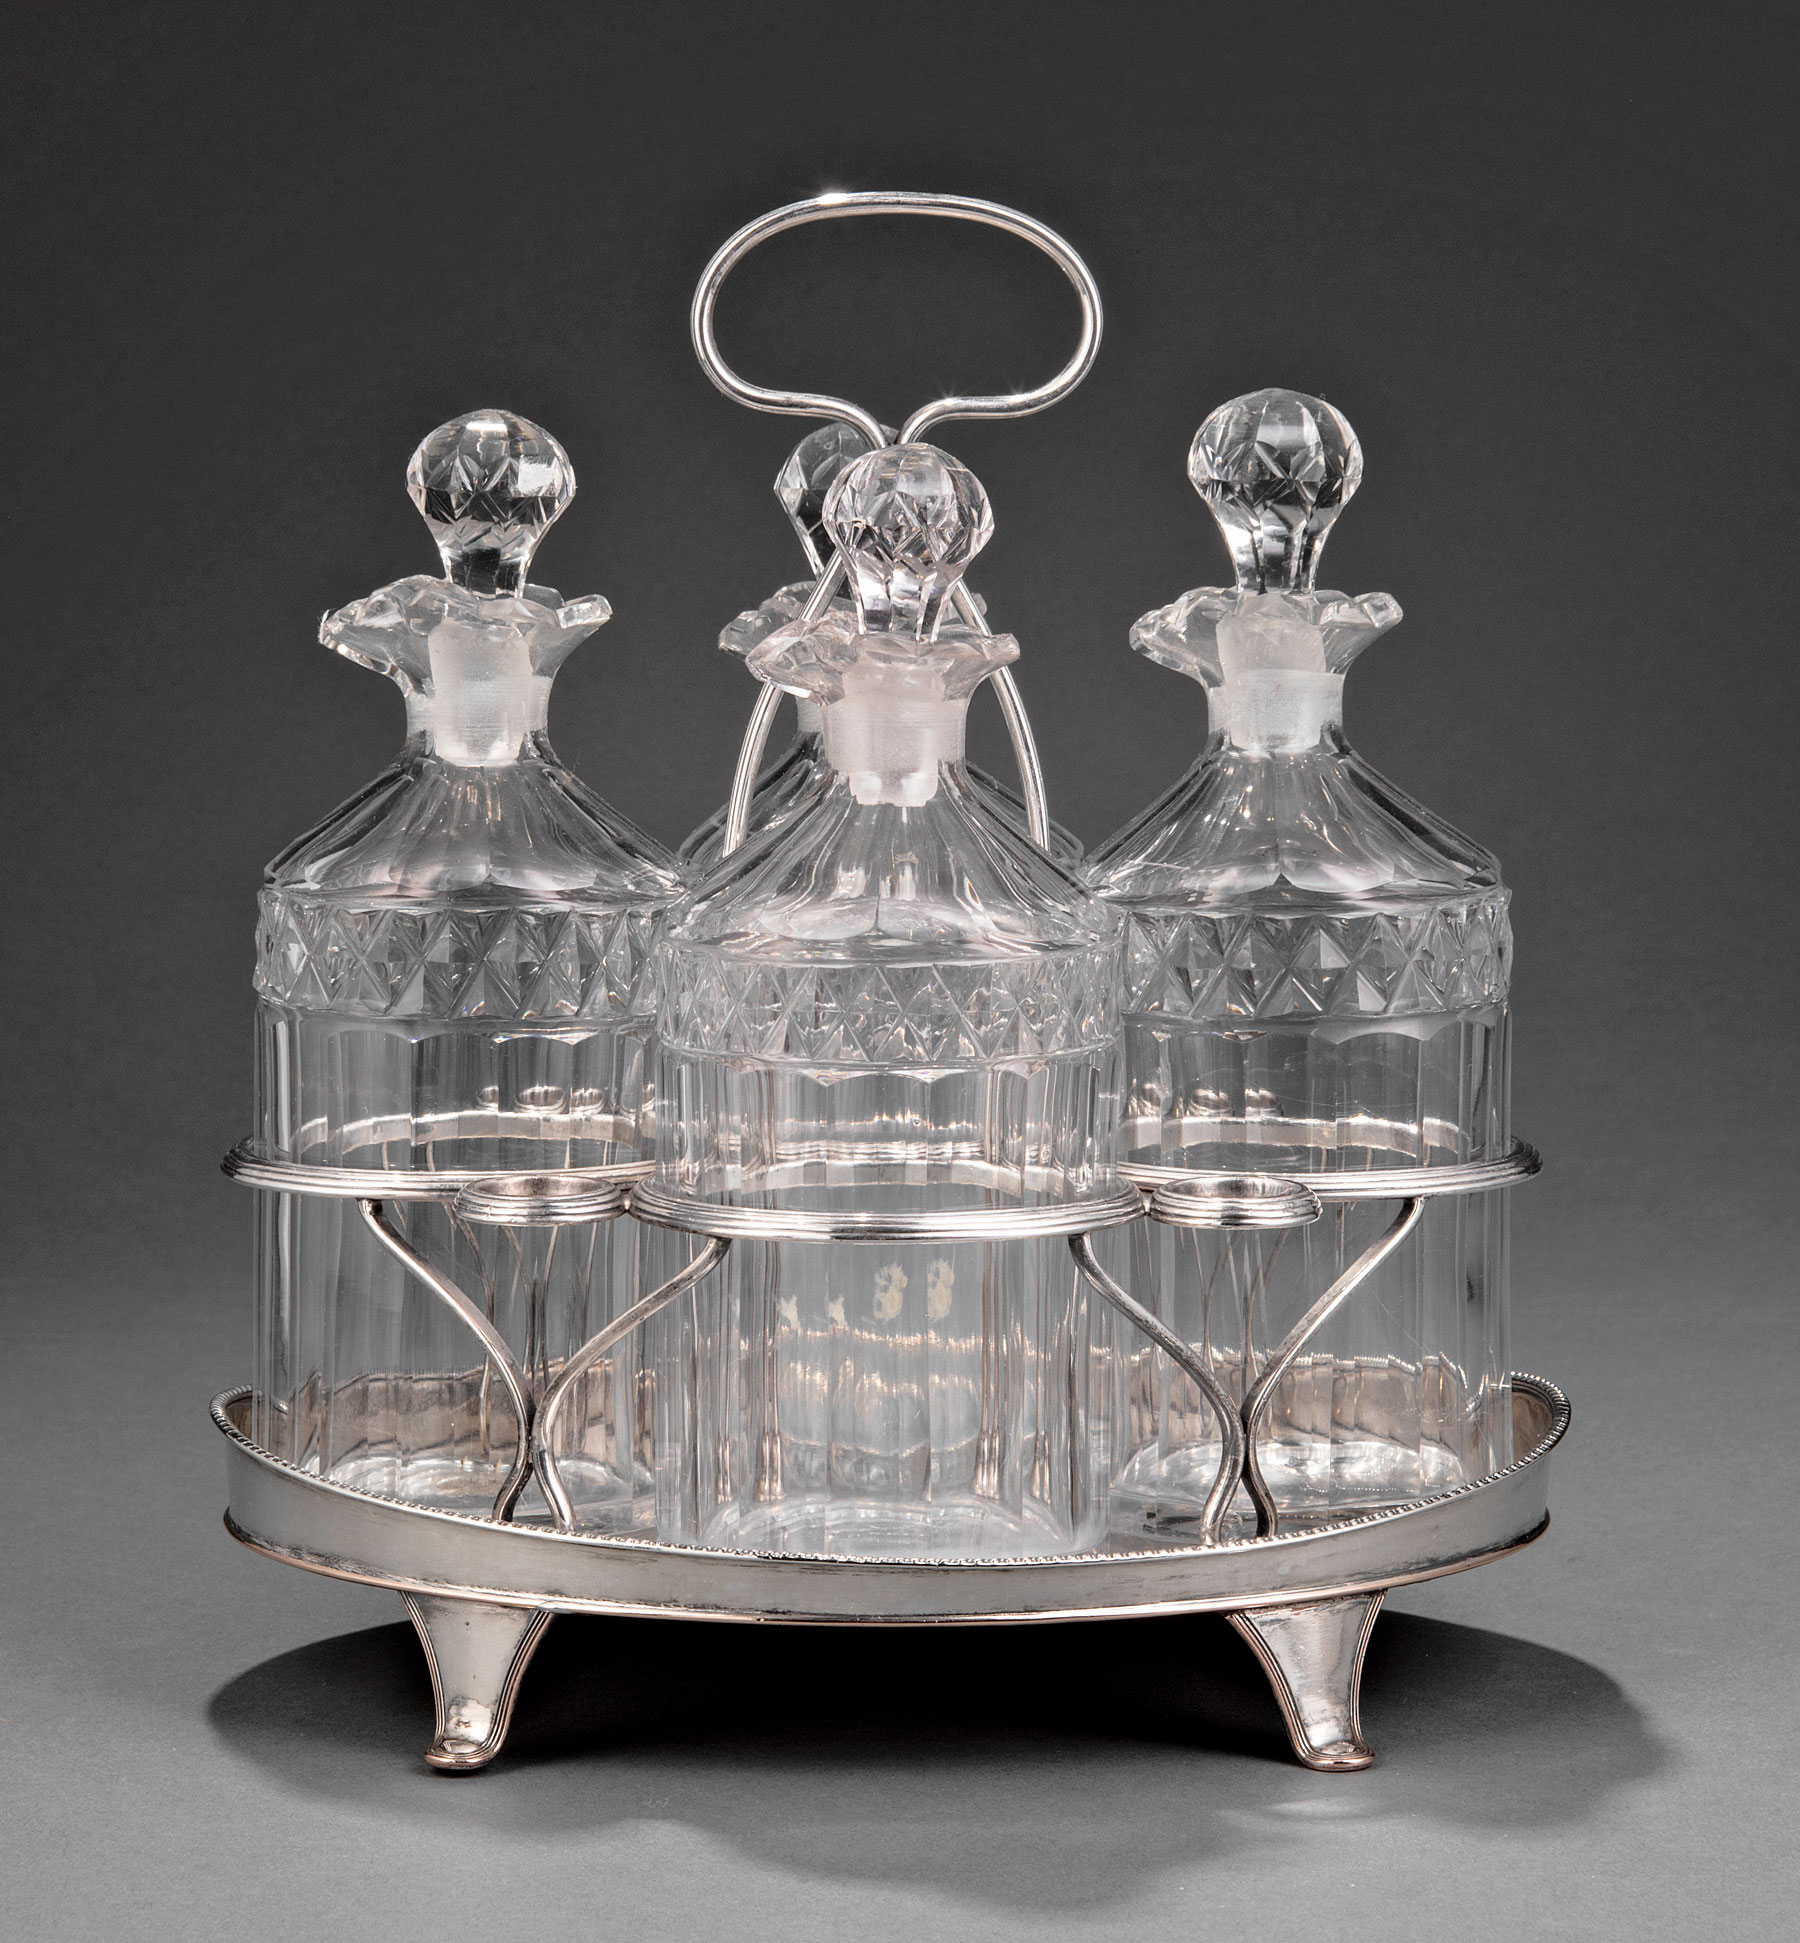 Lot 748 - George III Sheffield Plate Cruet Stand , late 18th c., oval stand with reeded handle, bottle